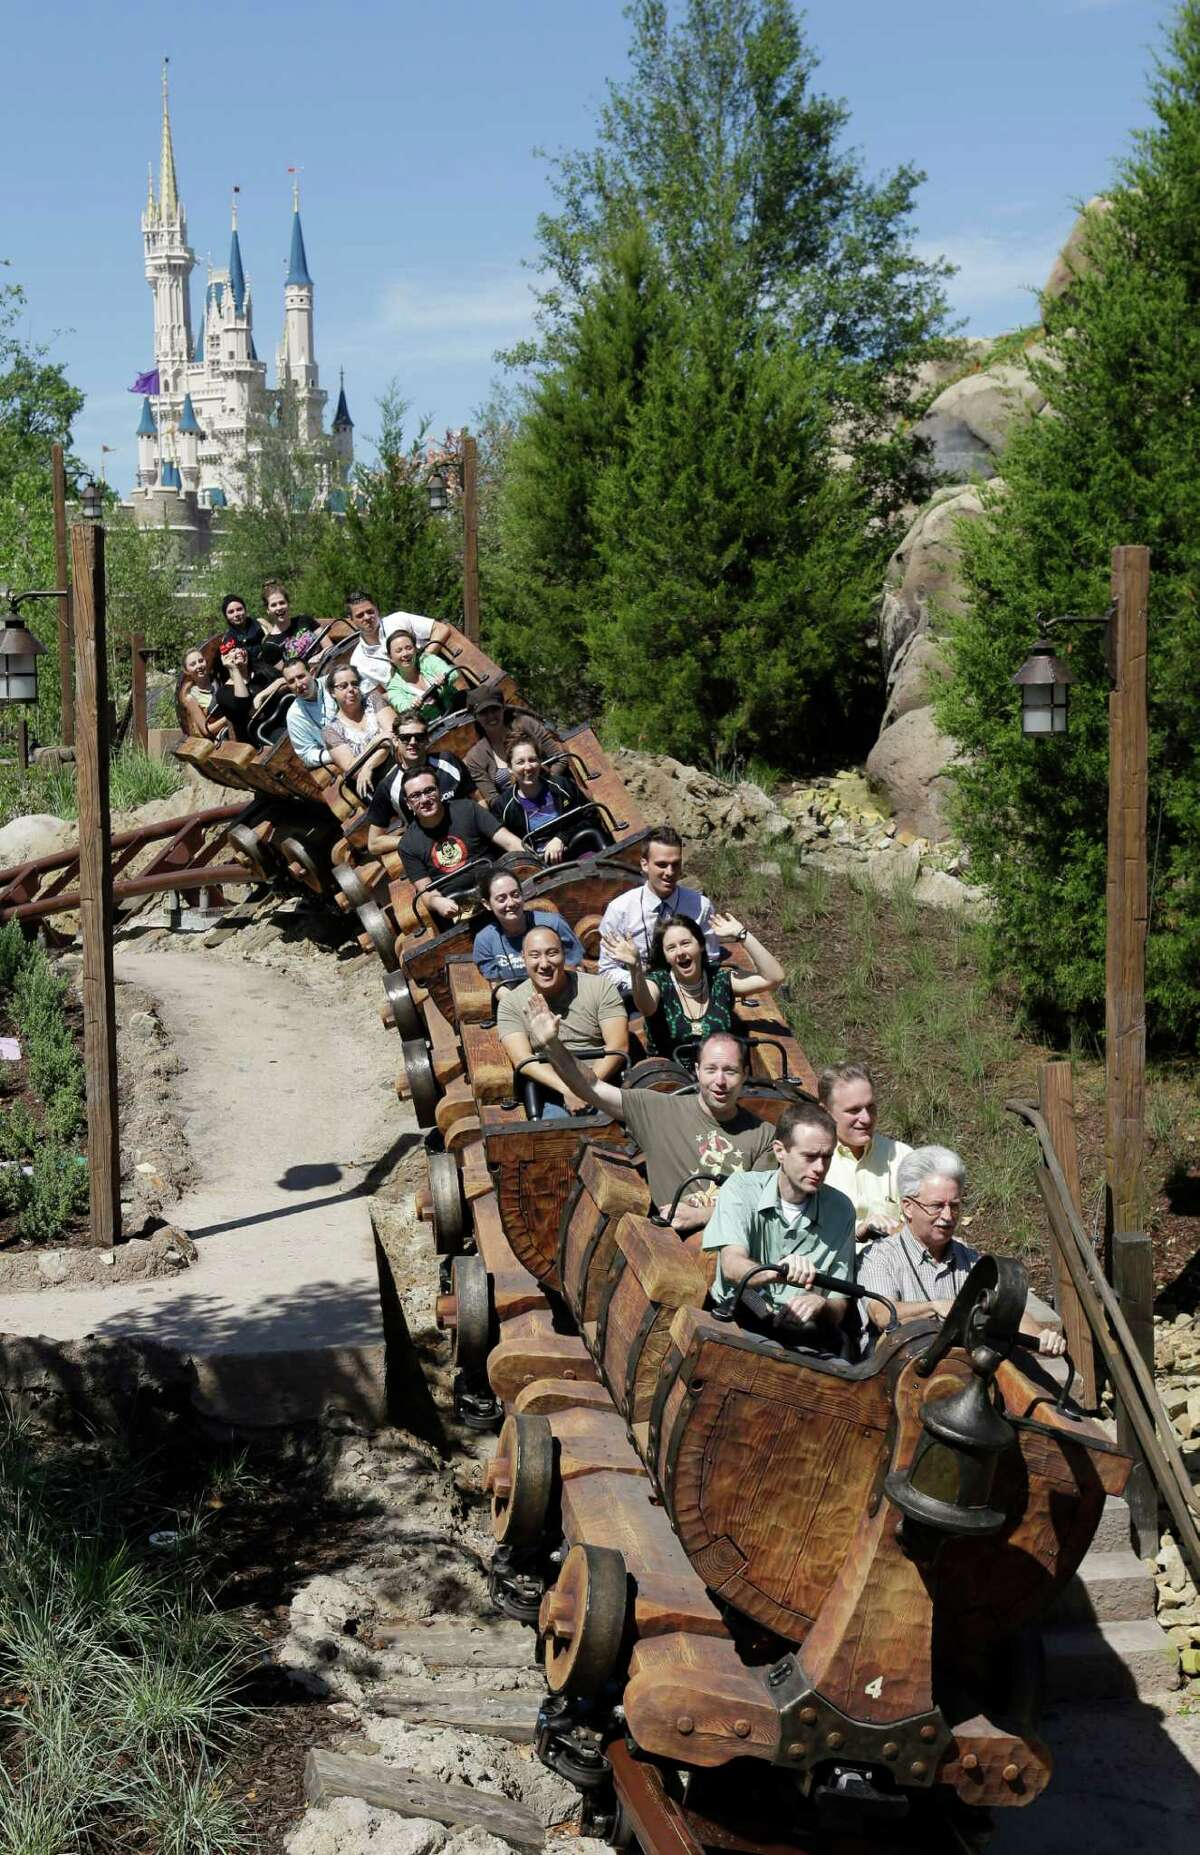 So what else is new in the world of roller coasters? The Big Mouse has been at it again. The Seven Dwarfs Mine Train roller coaster in the Magic Kingdom at Walt Disney World, in Lake Buena Vista, Fla., is set to open later this month. Heigh ho!